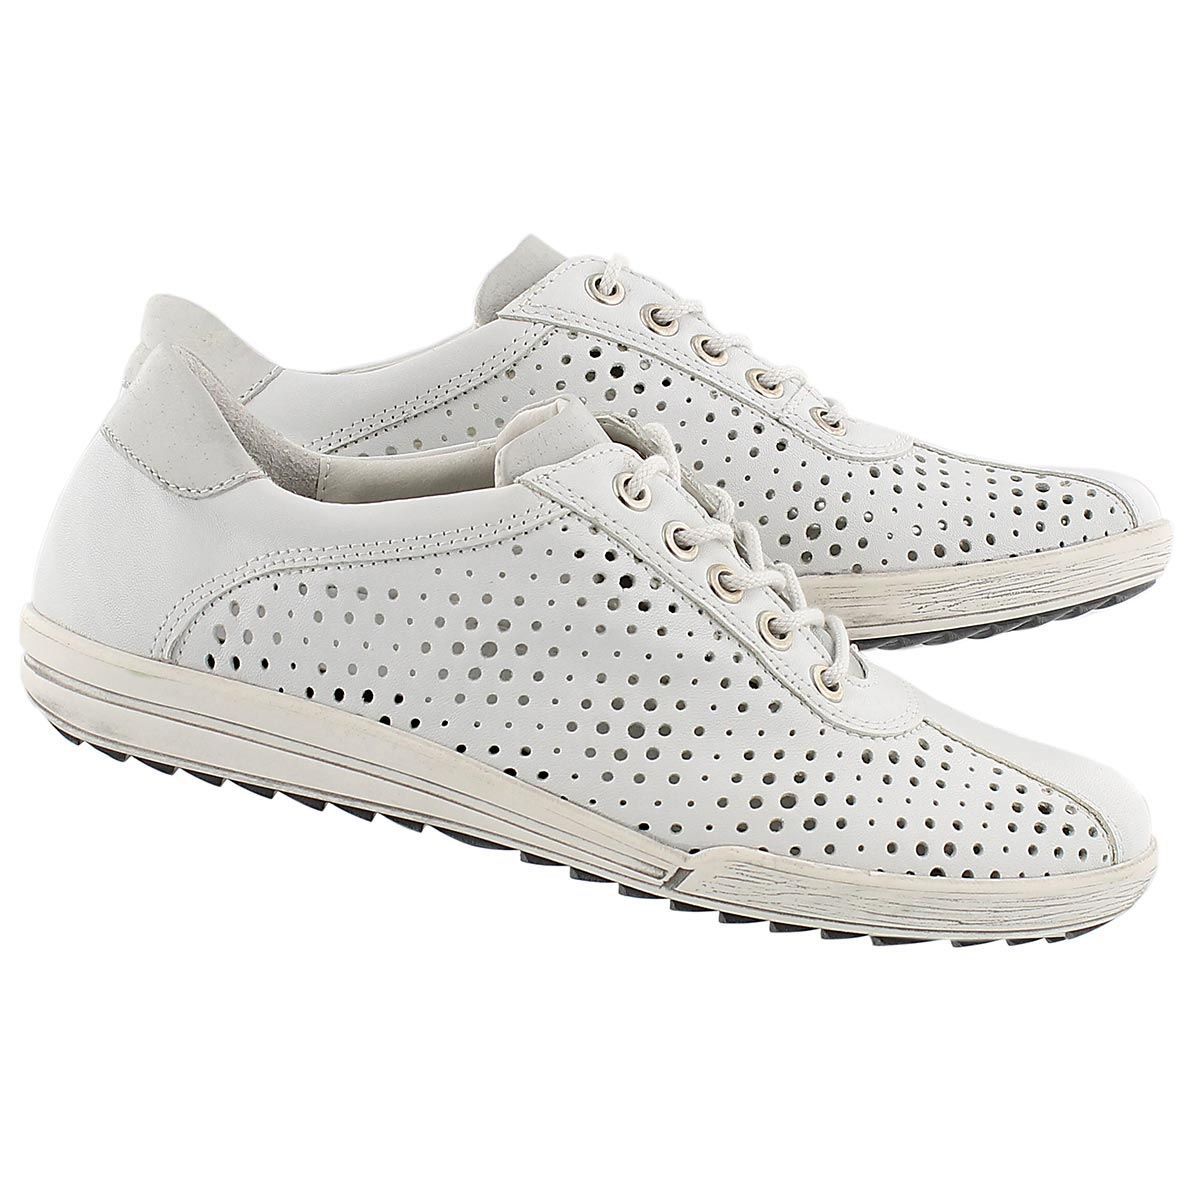 Lds Dany 49 white perforated sneaker